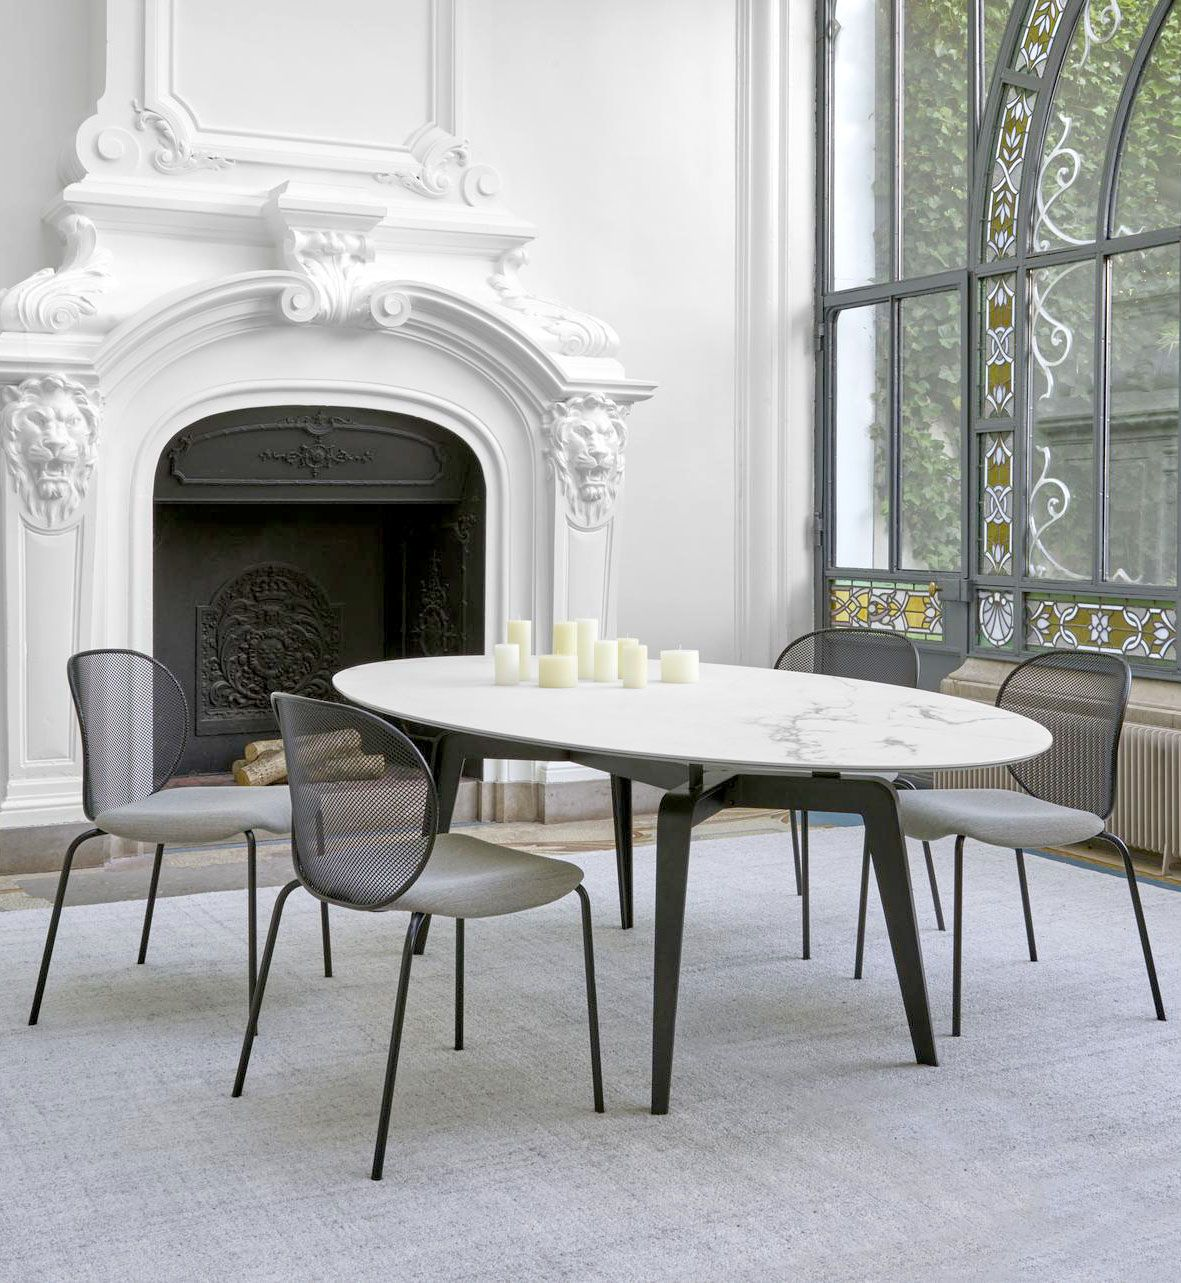 15 High End Contemporary Dining Room Designs: Unbeaumatin Dining Chair Designed By Quaglio Simonelli For